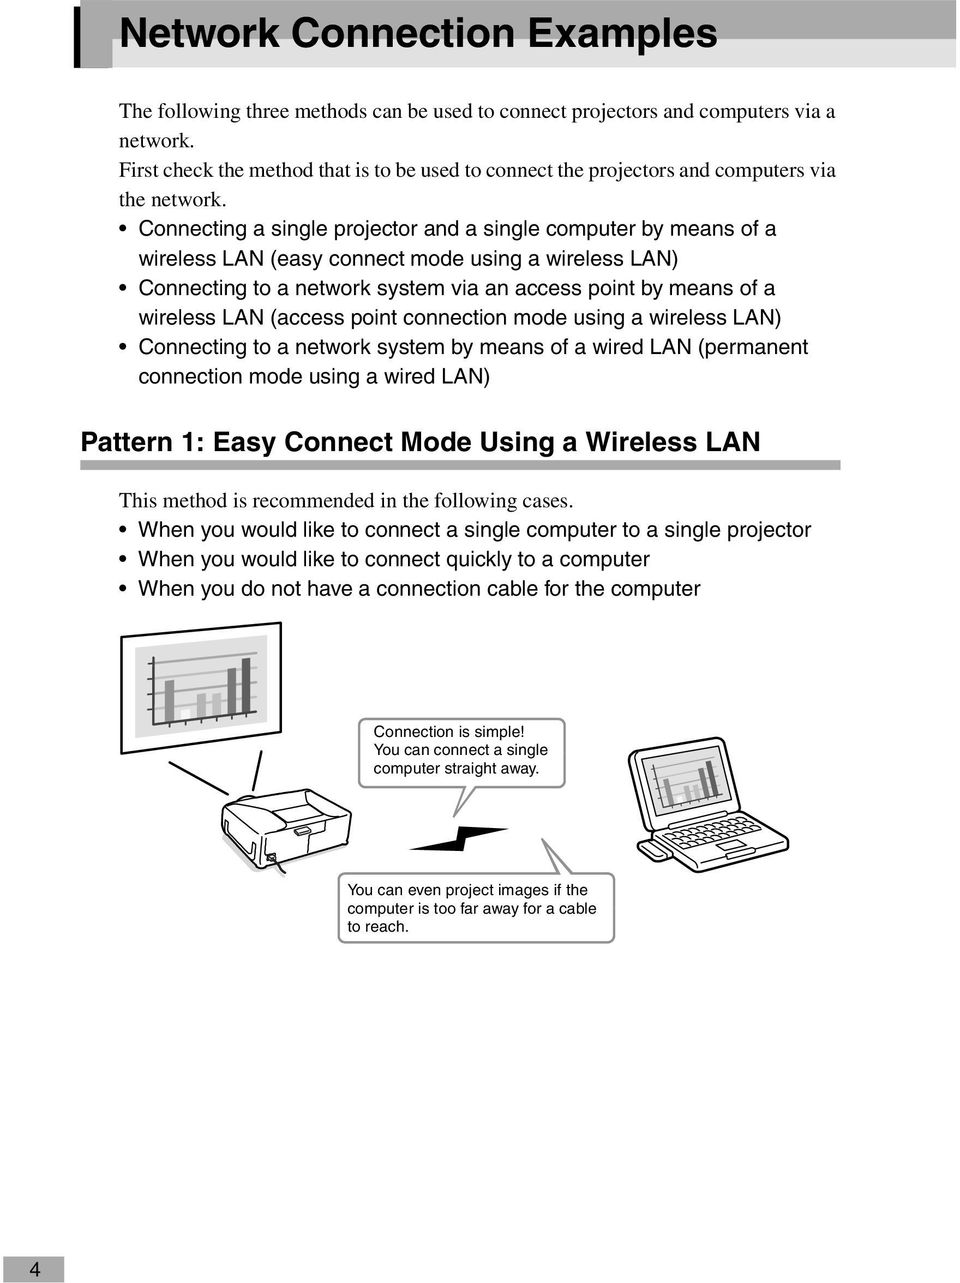 Connecting a single projector and a single computer by means of a wireless LAN (easy connect mode using a wireless LAN) Connecting to a network system via an access point by means of a wireless LAN